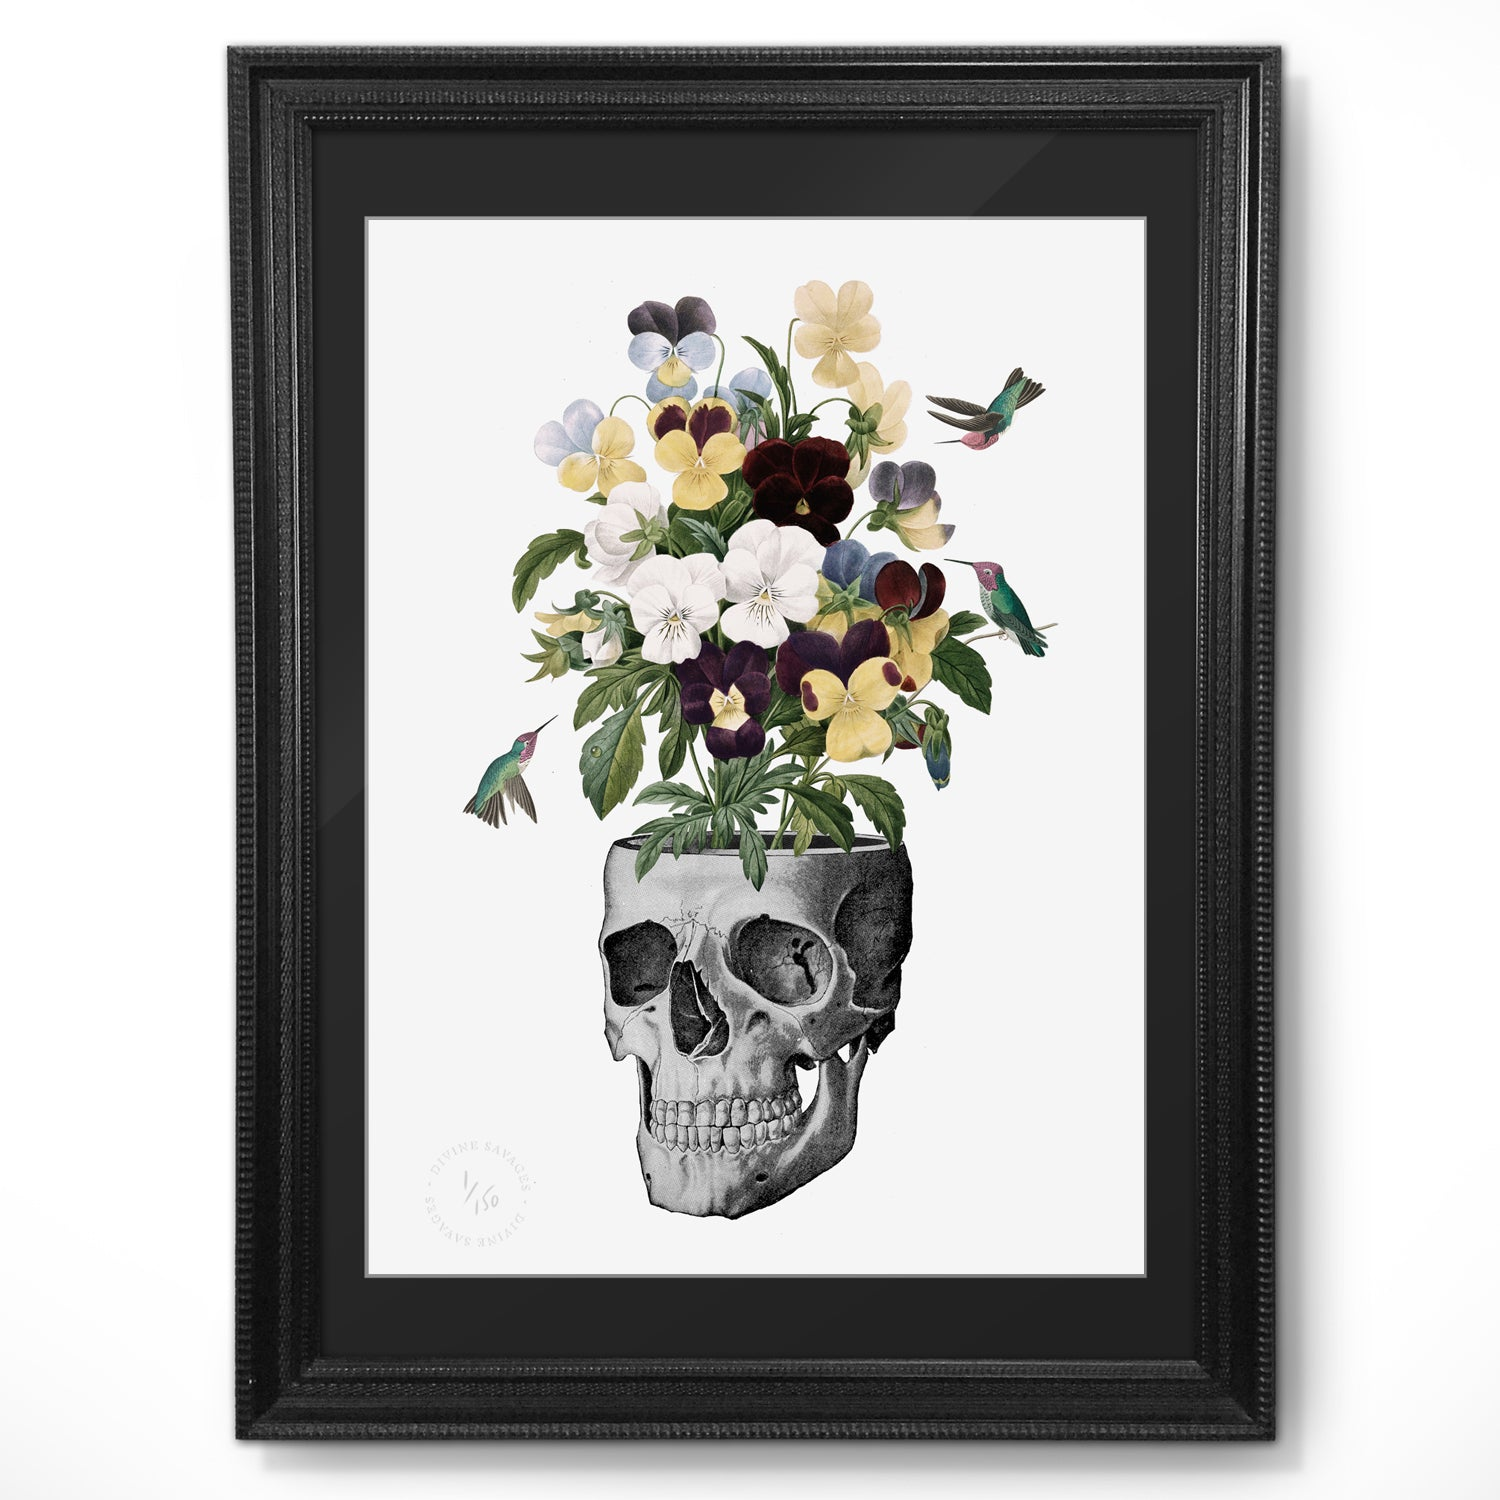 LoBotanist is a high quality art print by Divine Savages. Home furnishing prints are the perfect way to add that final touch to your beautiful home. Click to view the entire collection at Eclectic Hound.